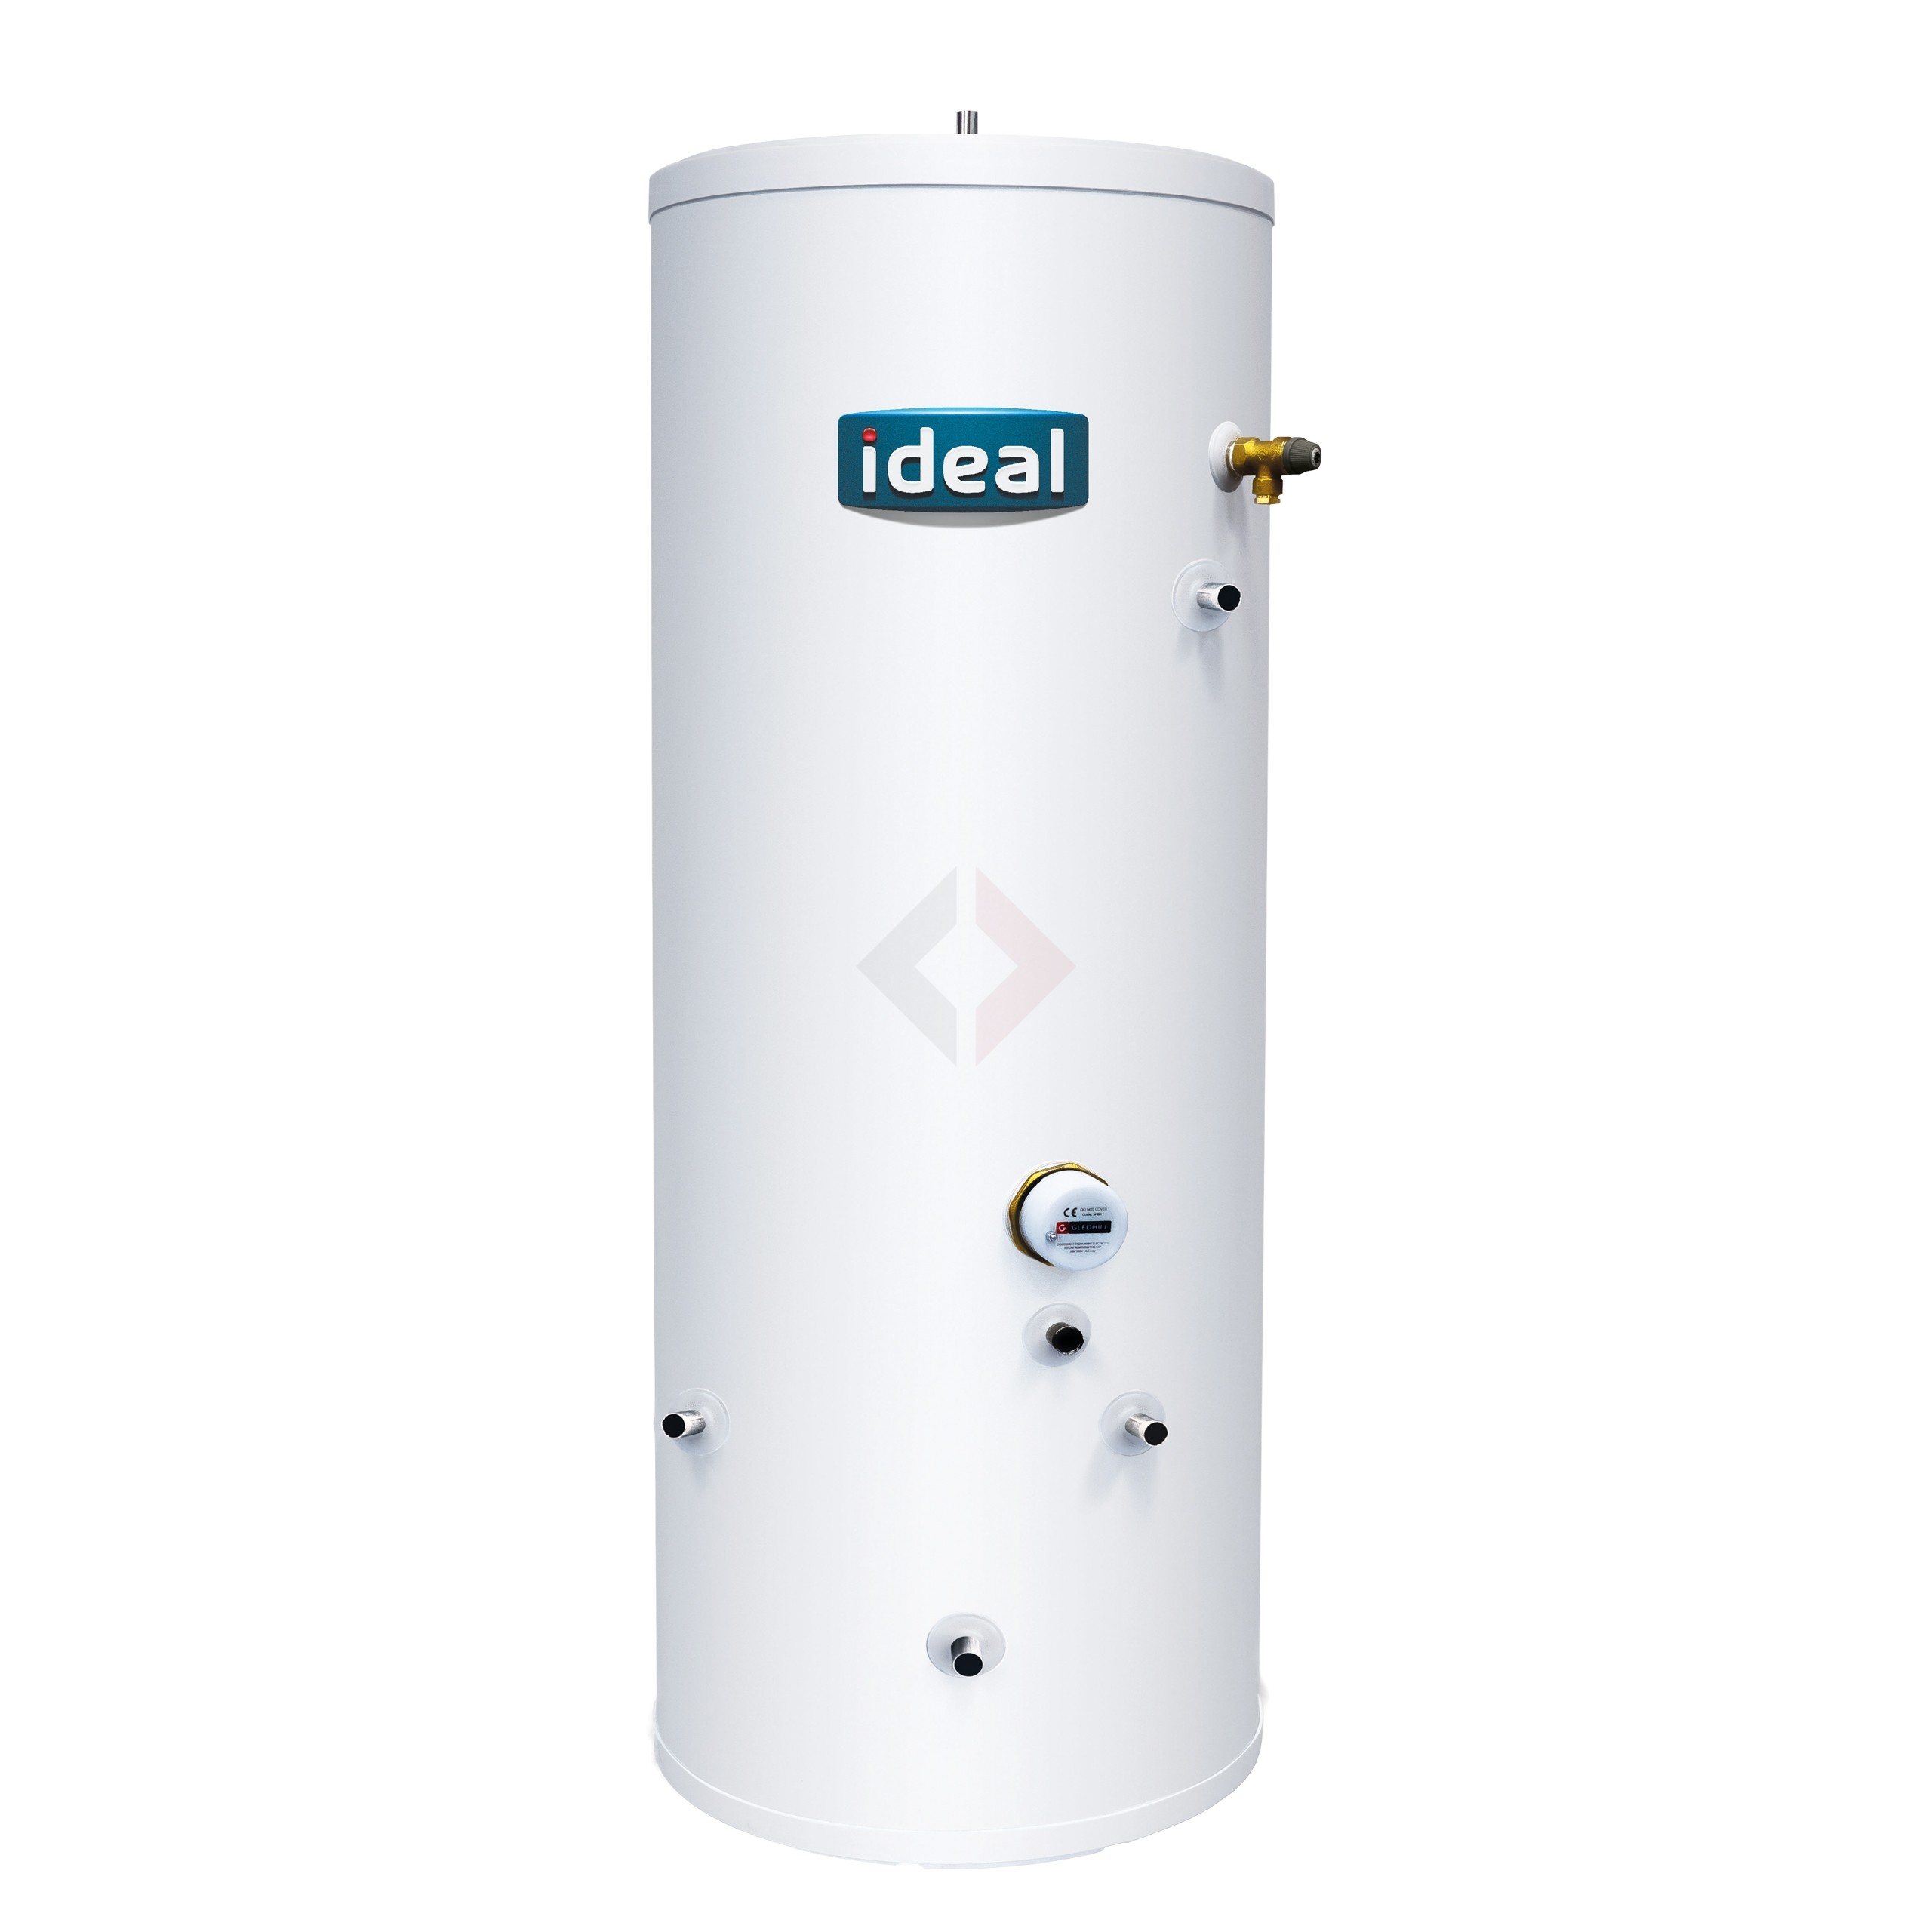 Ideal Pro 300L Indirect Unvented Cylinder